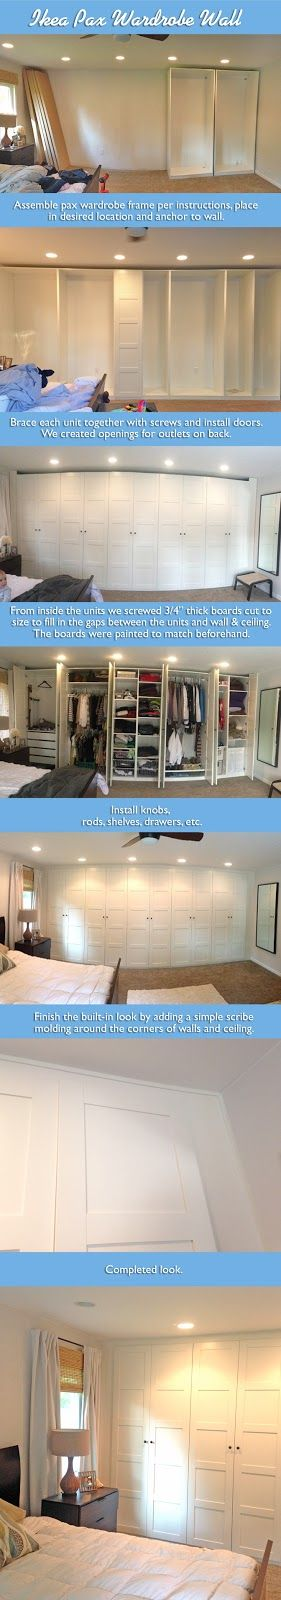 The Ranch We Love: Ikea Pax Wardrobe Wall Brief step-by-step on how